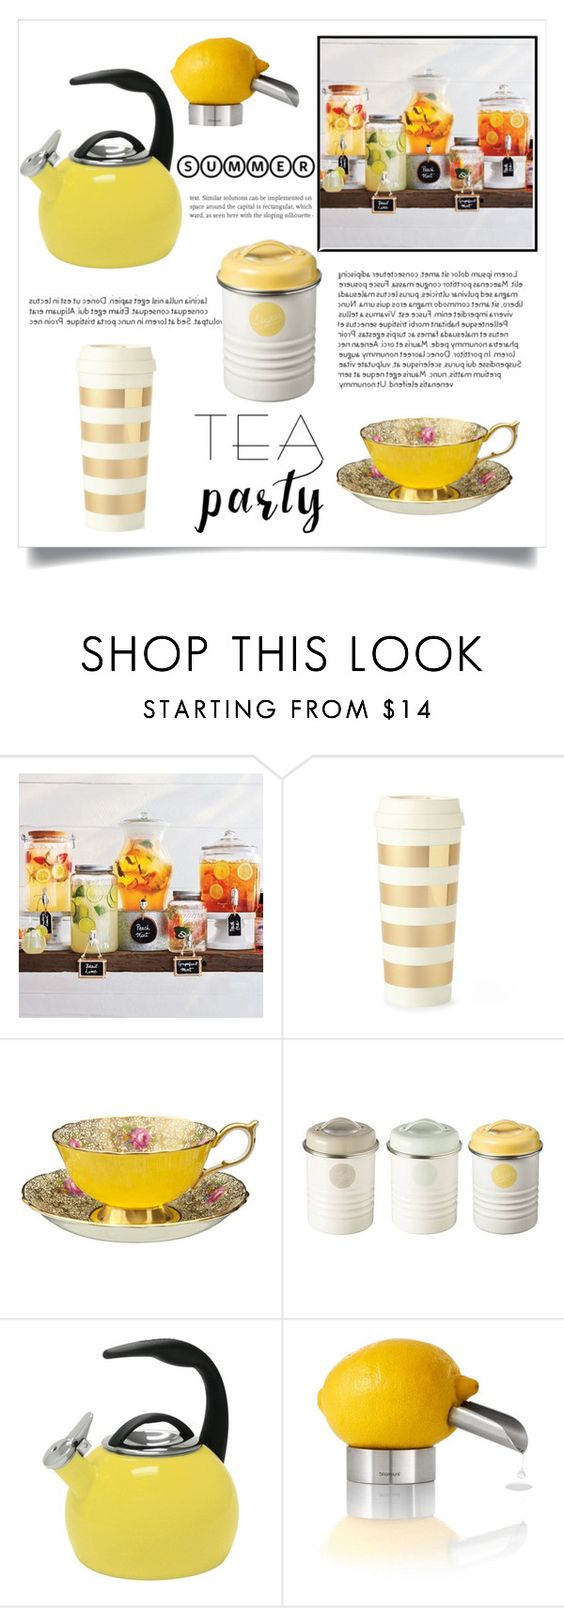 """""""#YellowTeaParty"""" by jaylynn-281 ❤ liked on Polyvore featuring interior, interiors, interior design, home, home decor, interior decorating, Sur La Table, Kate Spade, Typhoon and Chantal"""